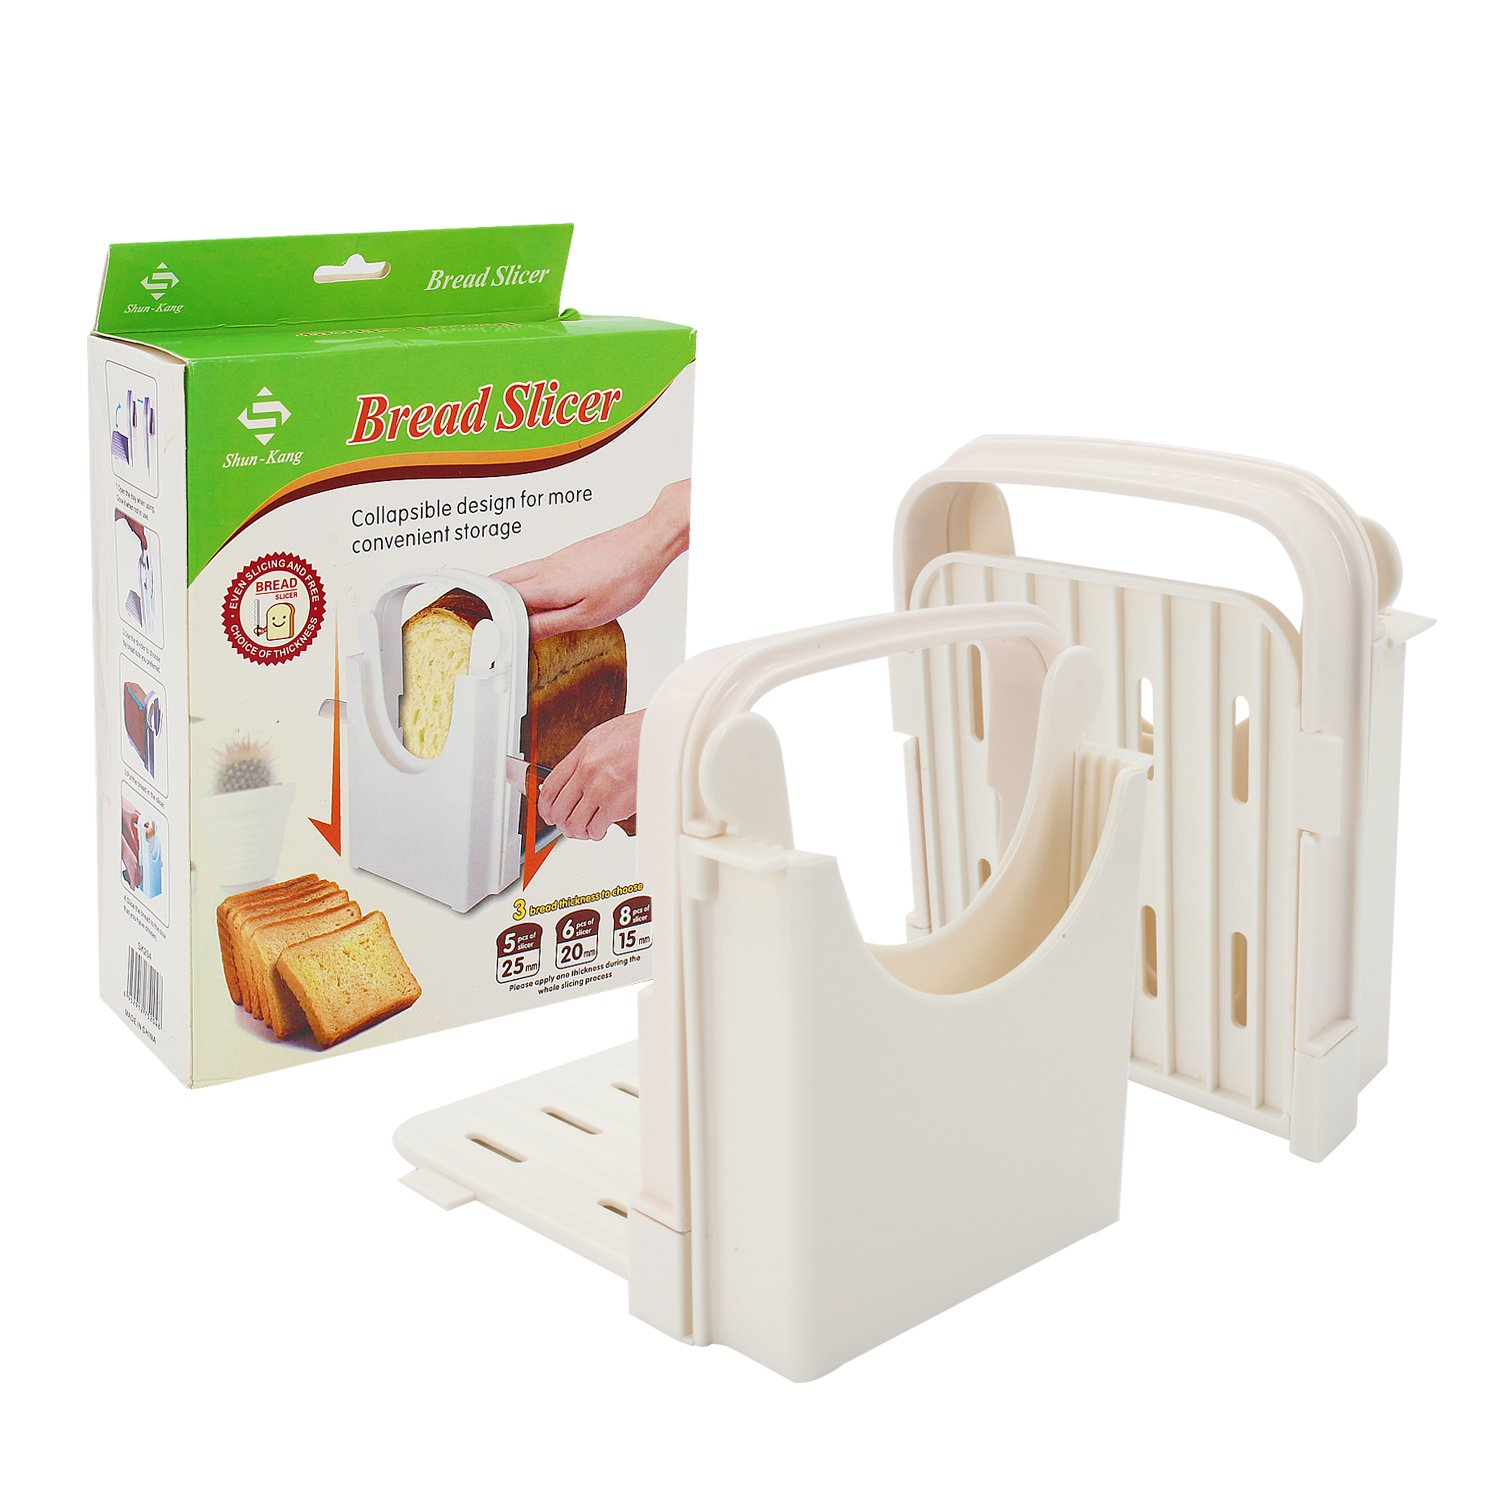 Zaker Bread/Toast Slicer, Loaf Slicer Cutter for Homemade Bread, ABS Environmentally Friendly Plastic, Foldable, Bread Cutting Guide and Adjustable with 4 Slice Thicknesses,White